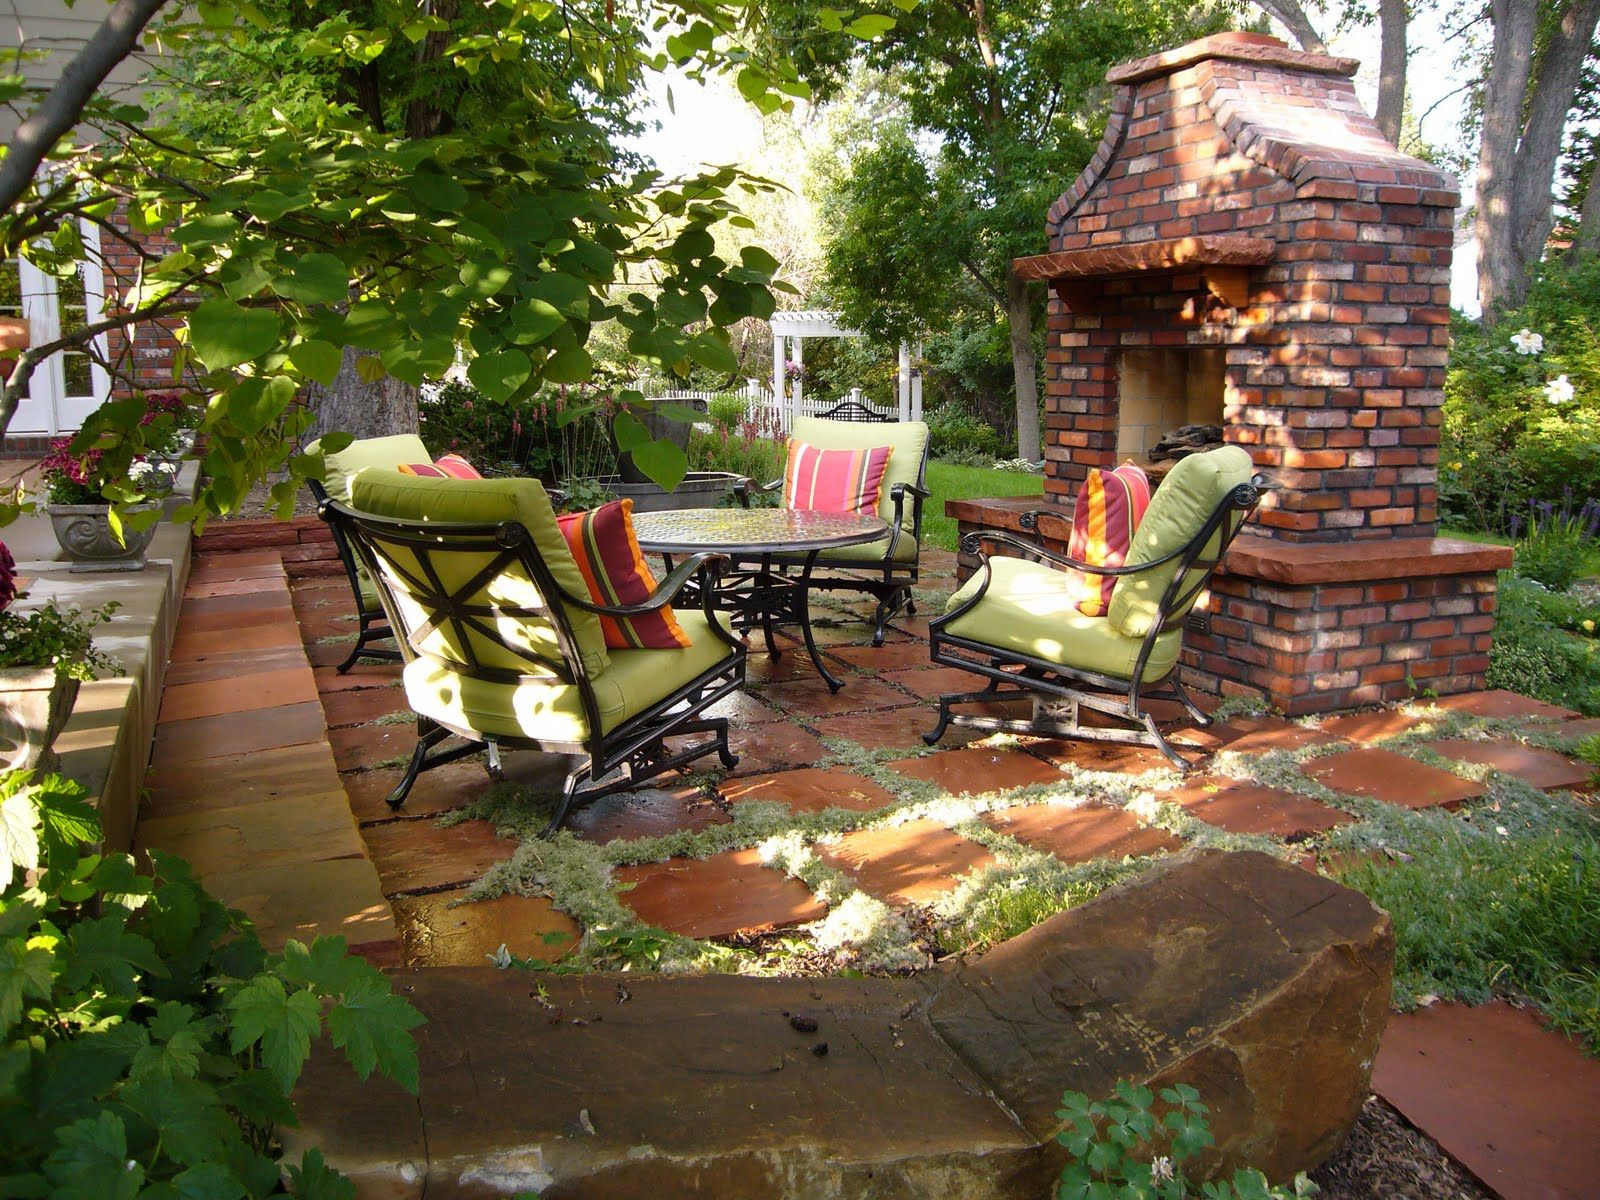 Backyard Patio Ideas for Making the Outdoor More ... on Porch Backyard Ideas id=99166